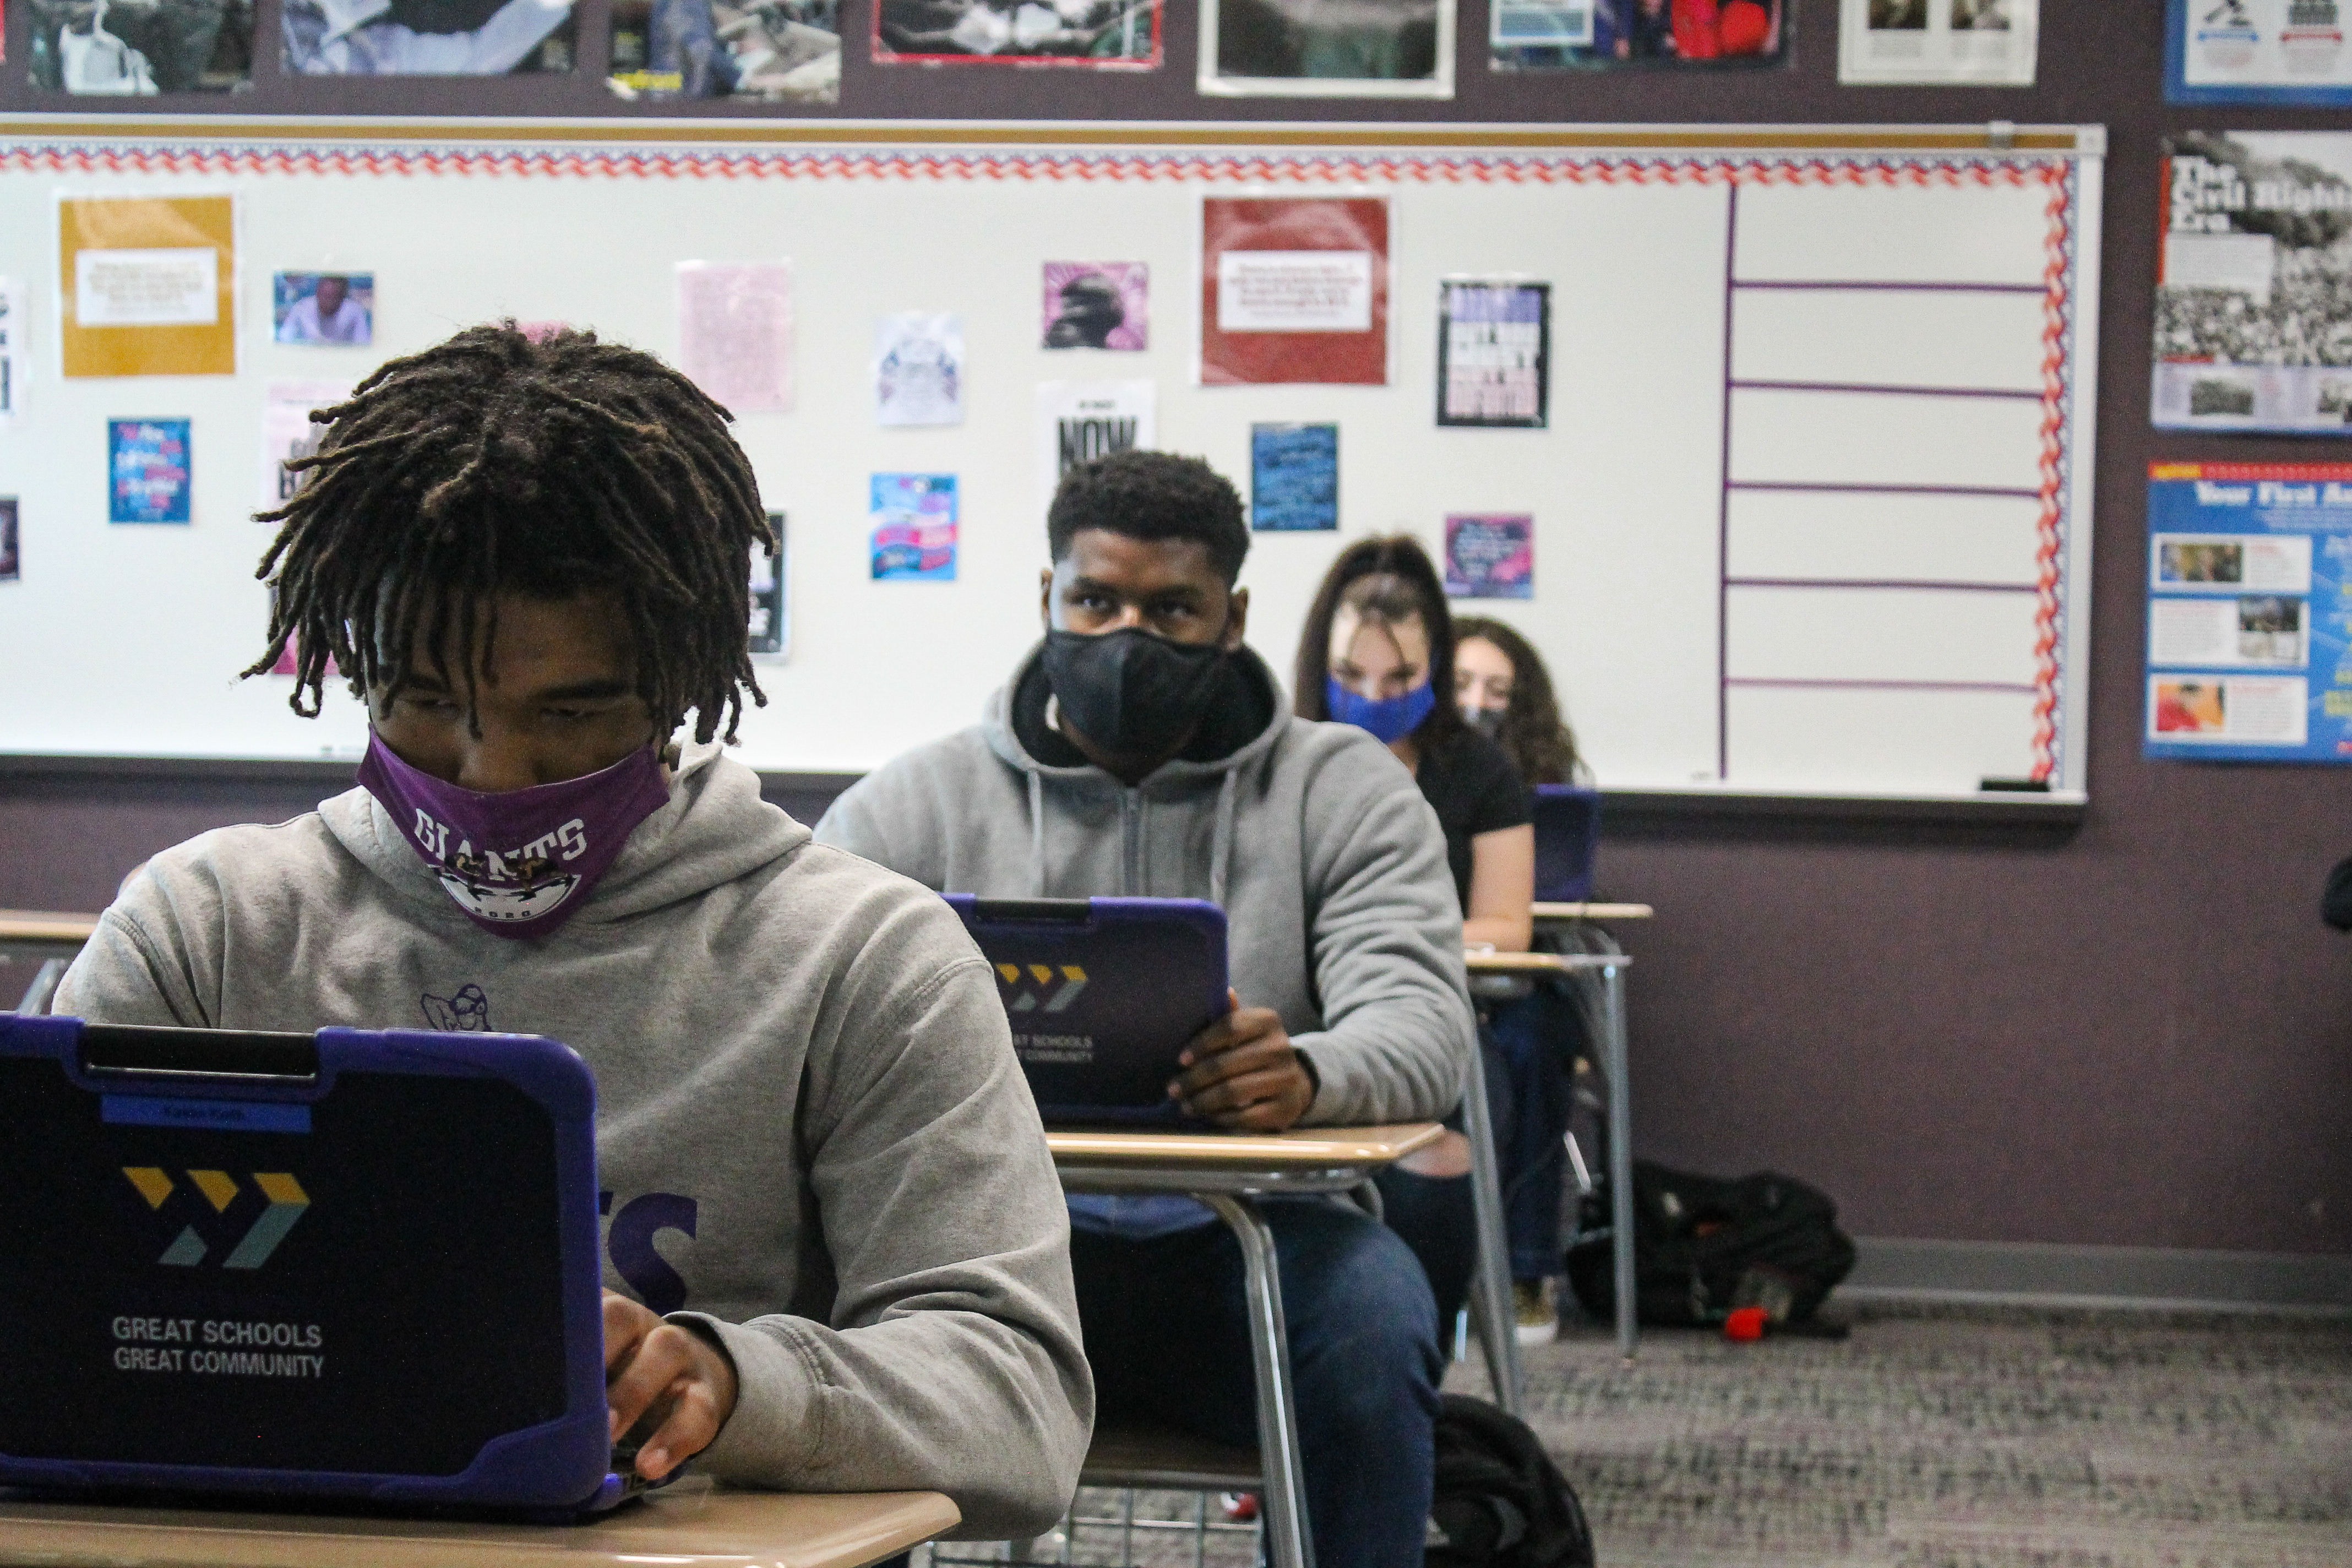 A row of masked students at Ben Davis High School in Indianapolis, Ind.,work on laptops in c classroom, with a white board behind them.